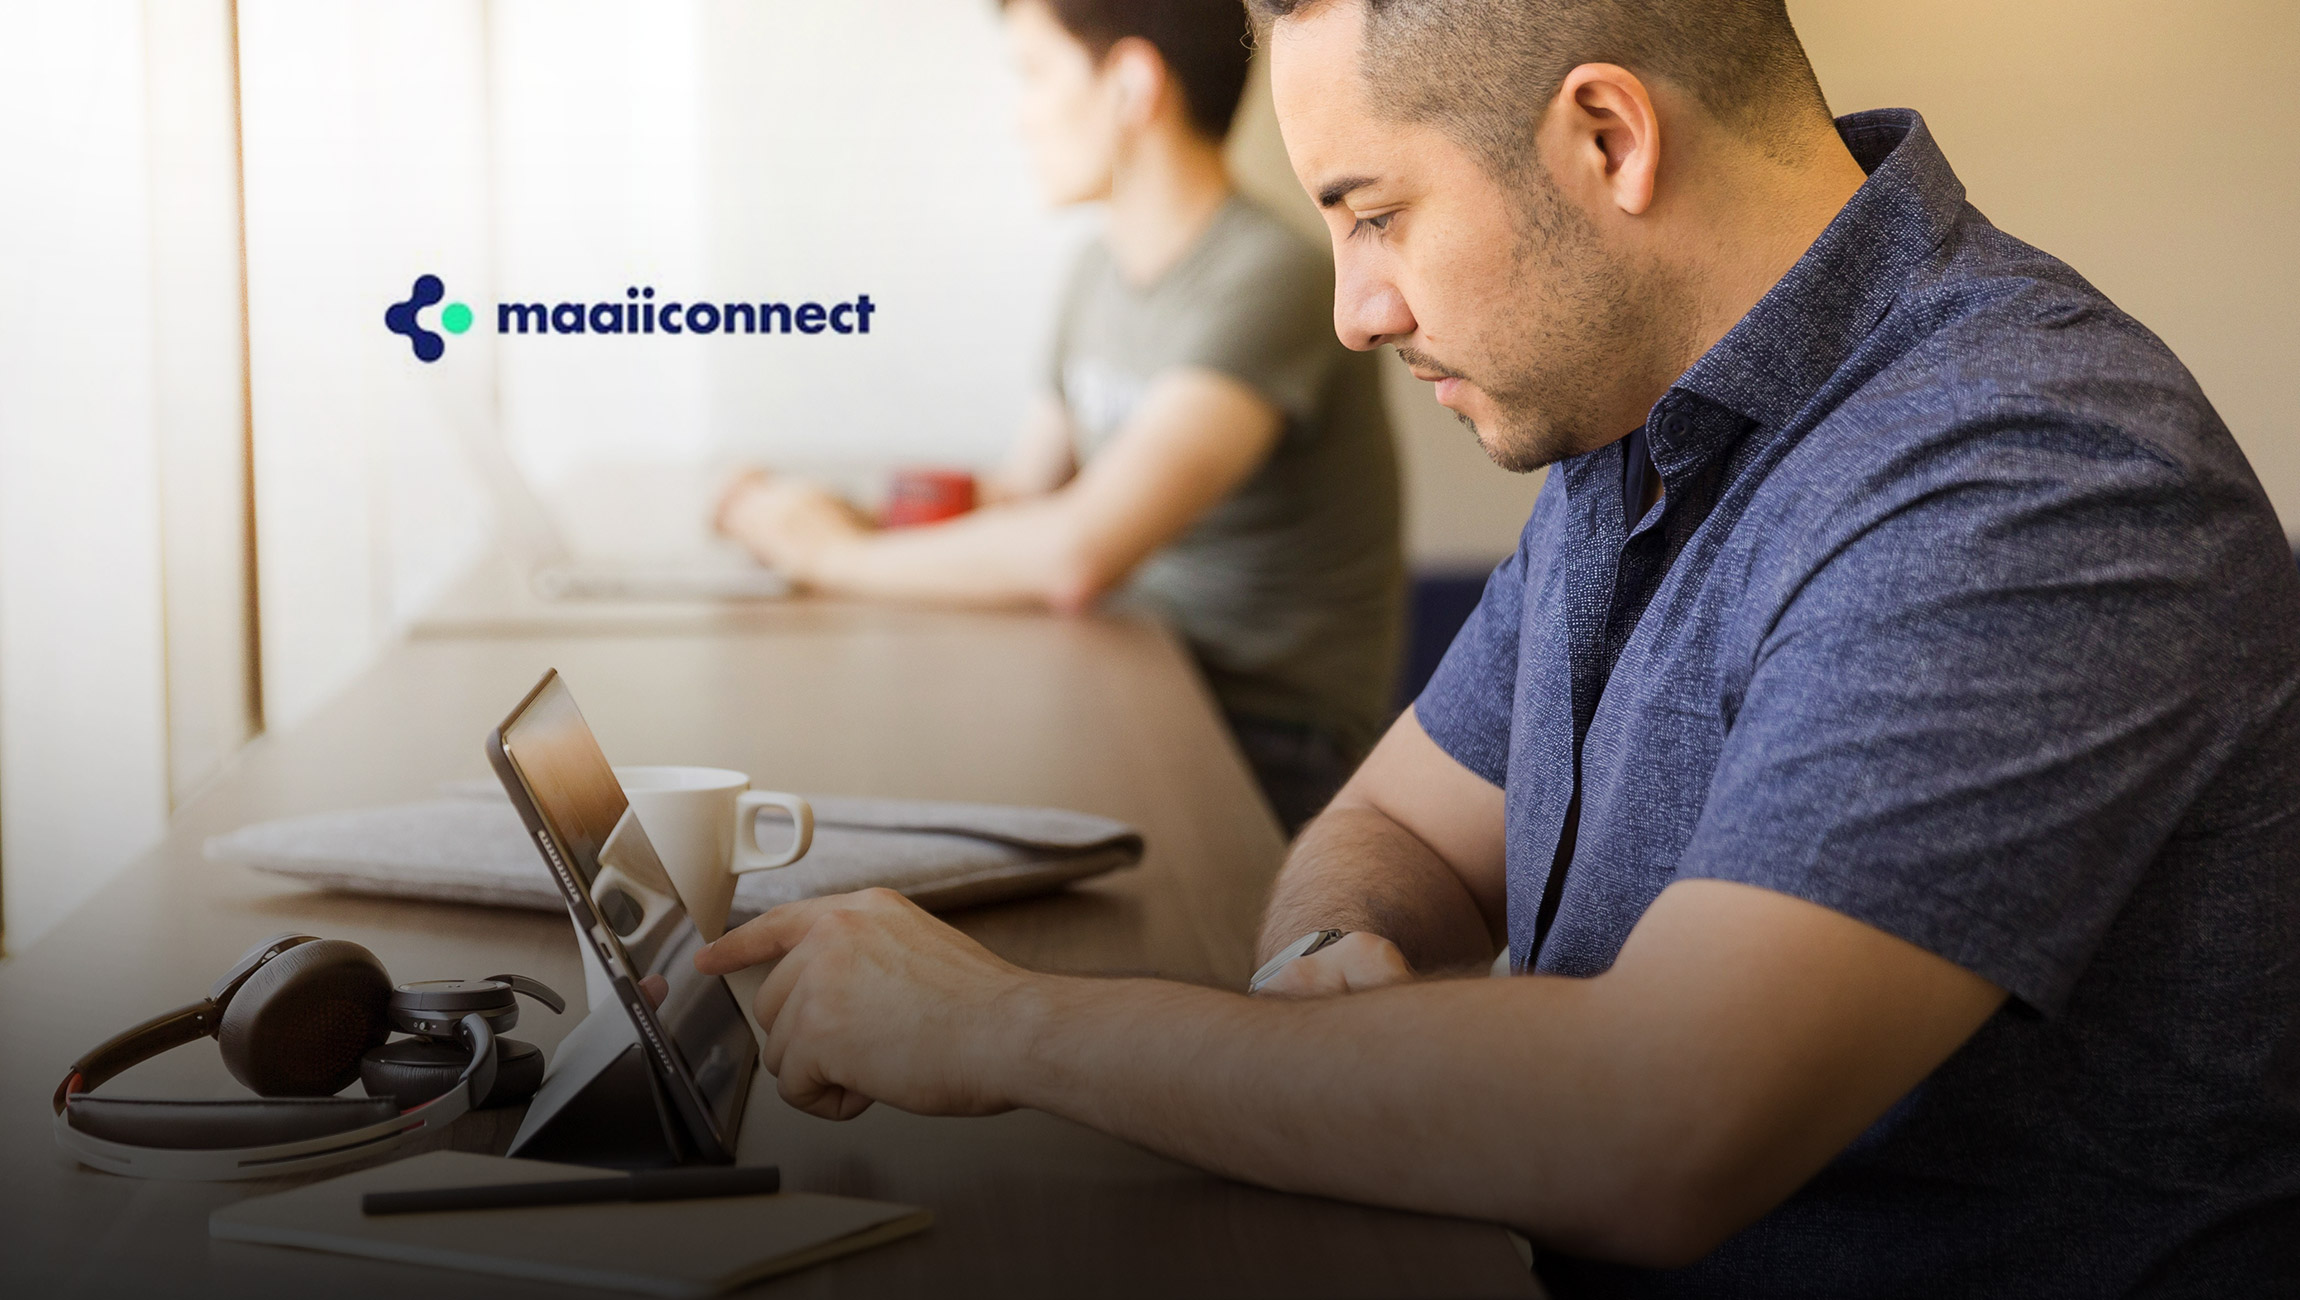 maaiiconnect: How to Transform Customer Experience With Technology